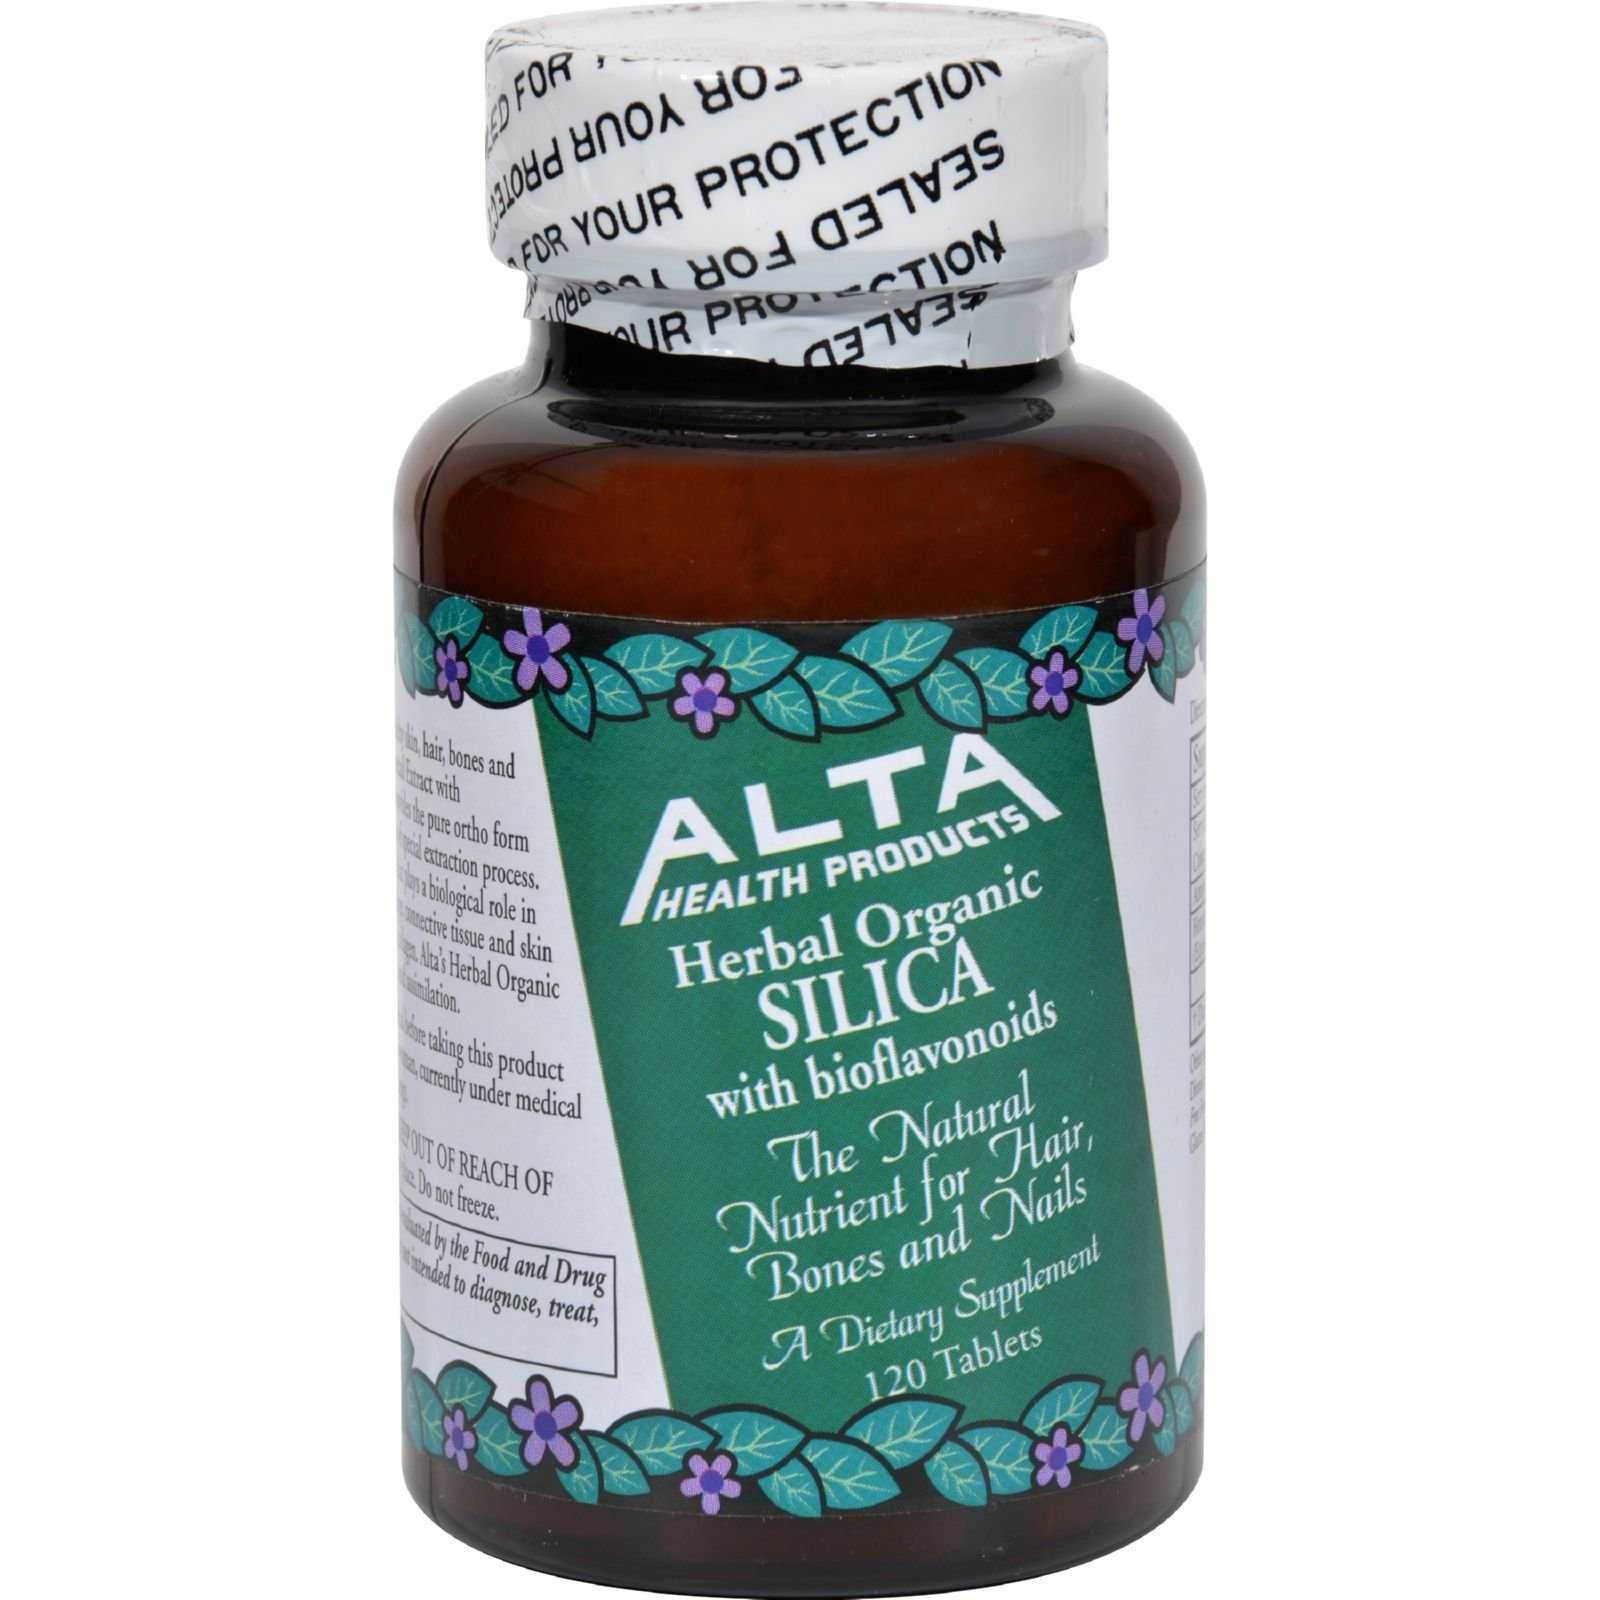 Alta Health Products Silica With Bioflavonoids - 500 mg - 120 Tablets (Pack of 4)